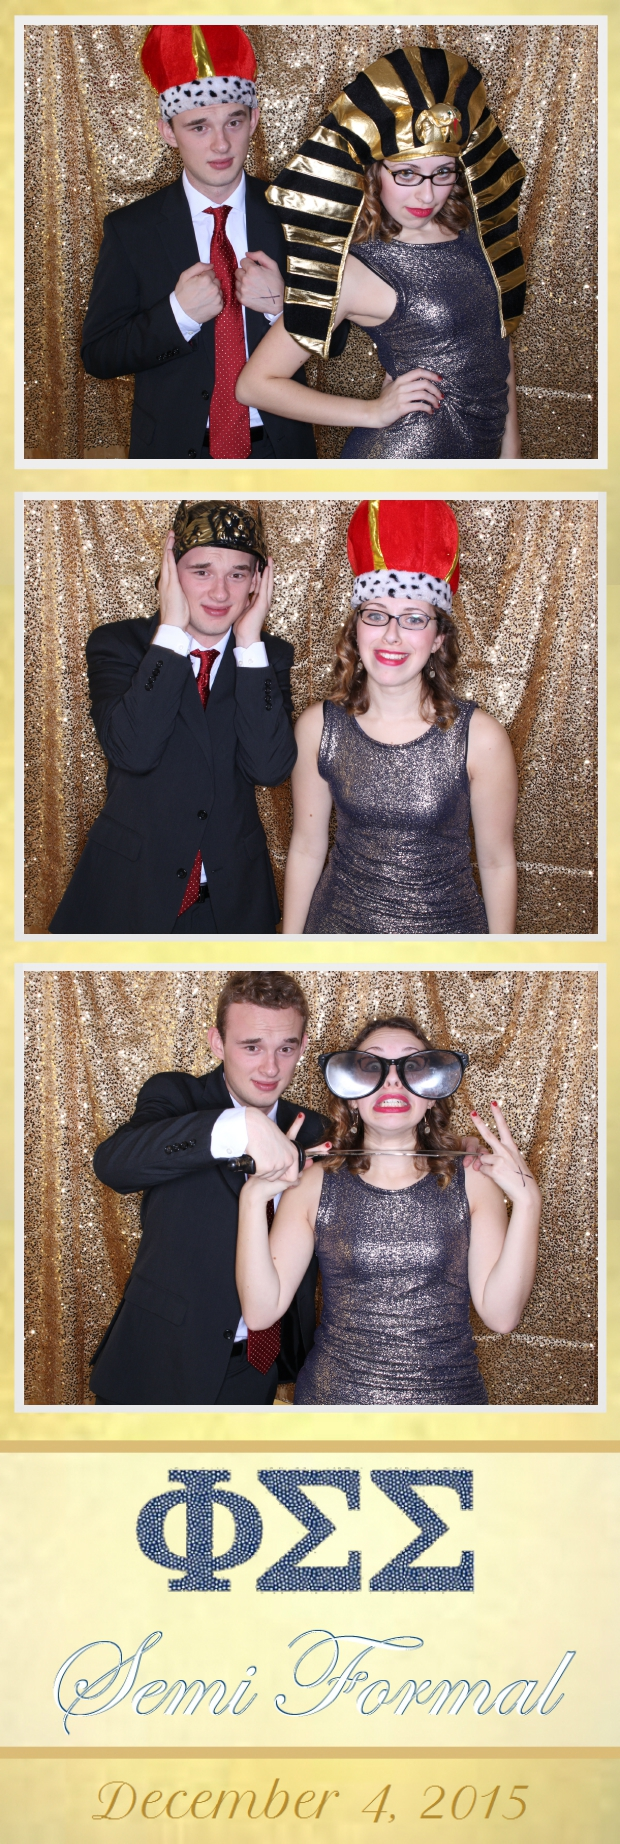 Guest House Events Photo Booth Phi Sigma Sigma Semi Formal (17).jpg